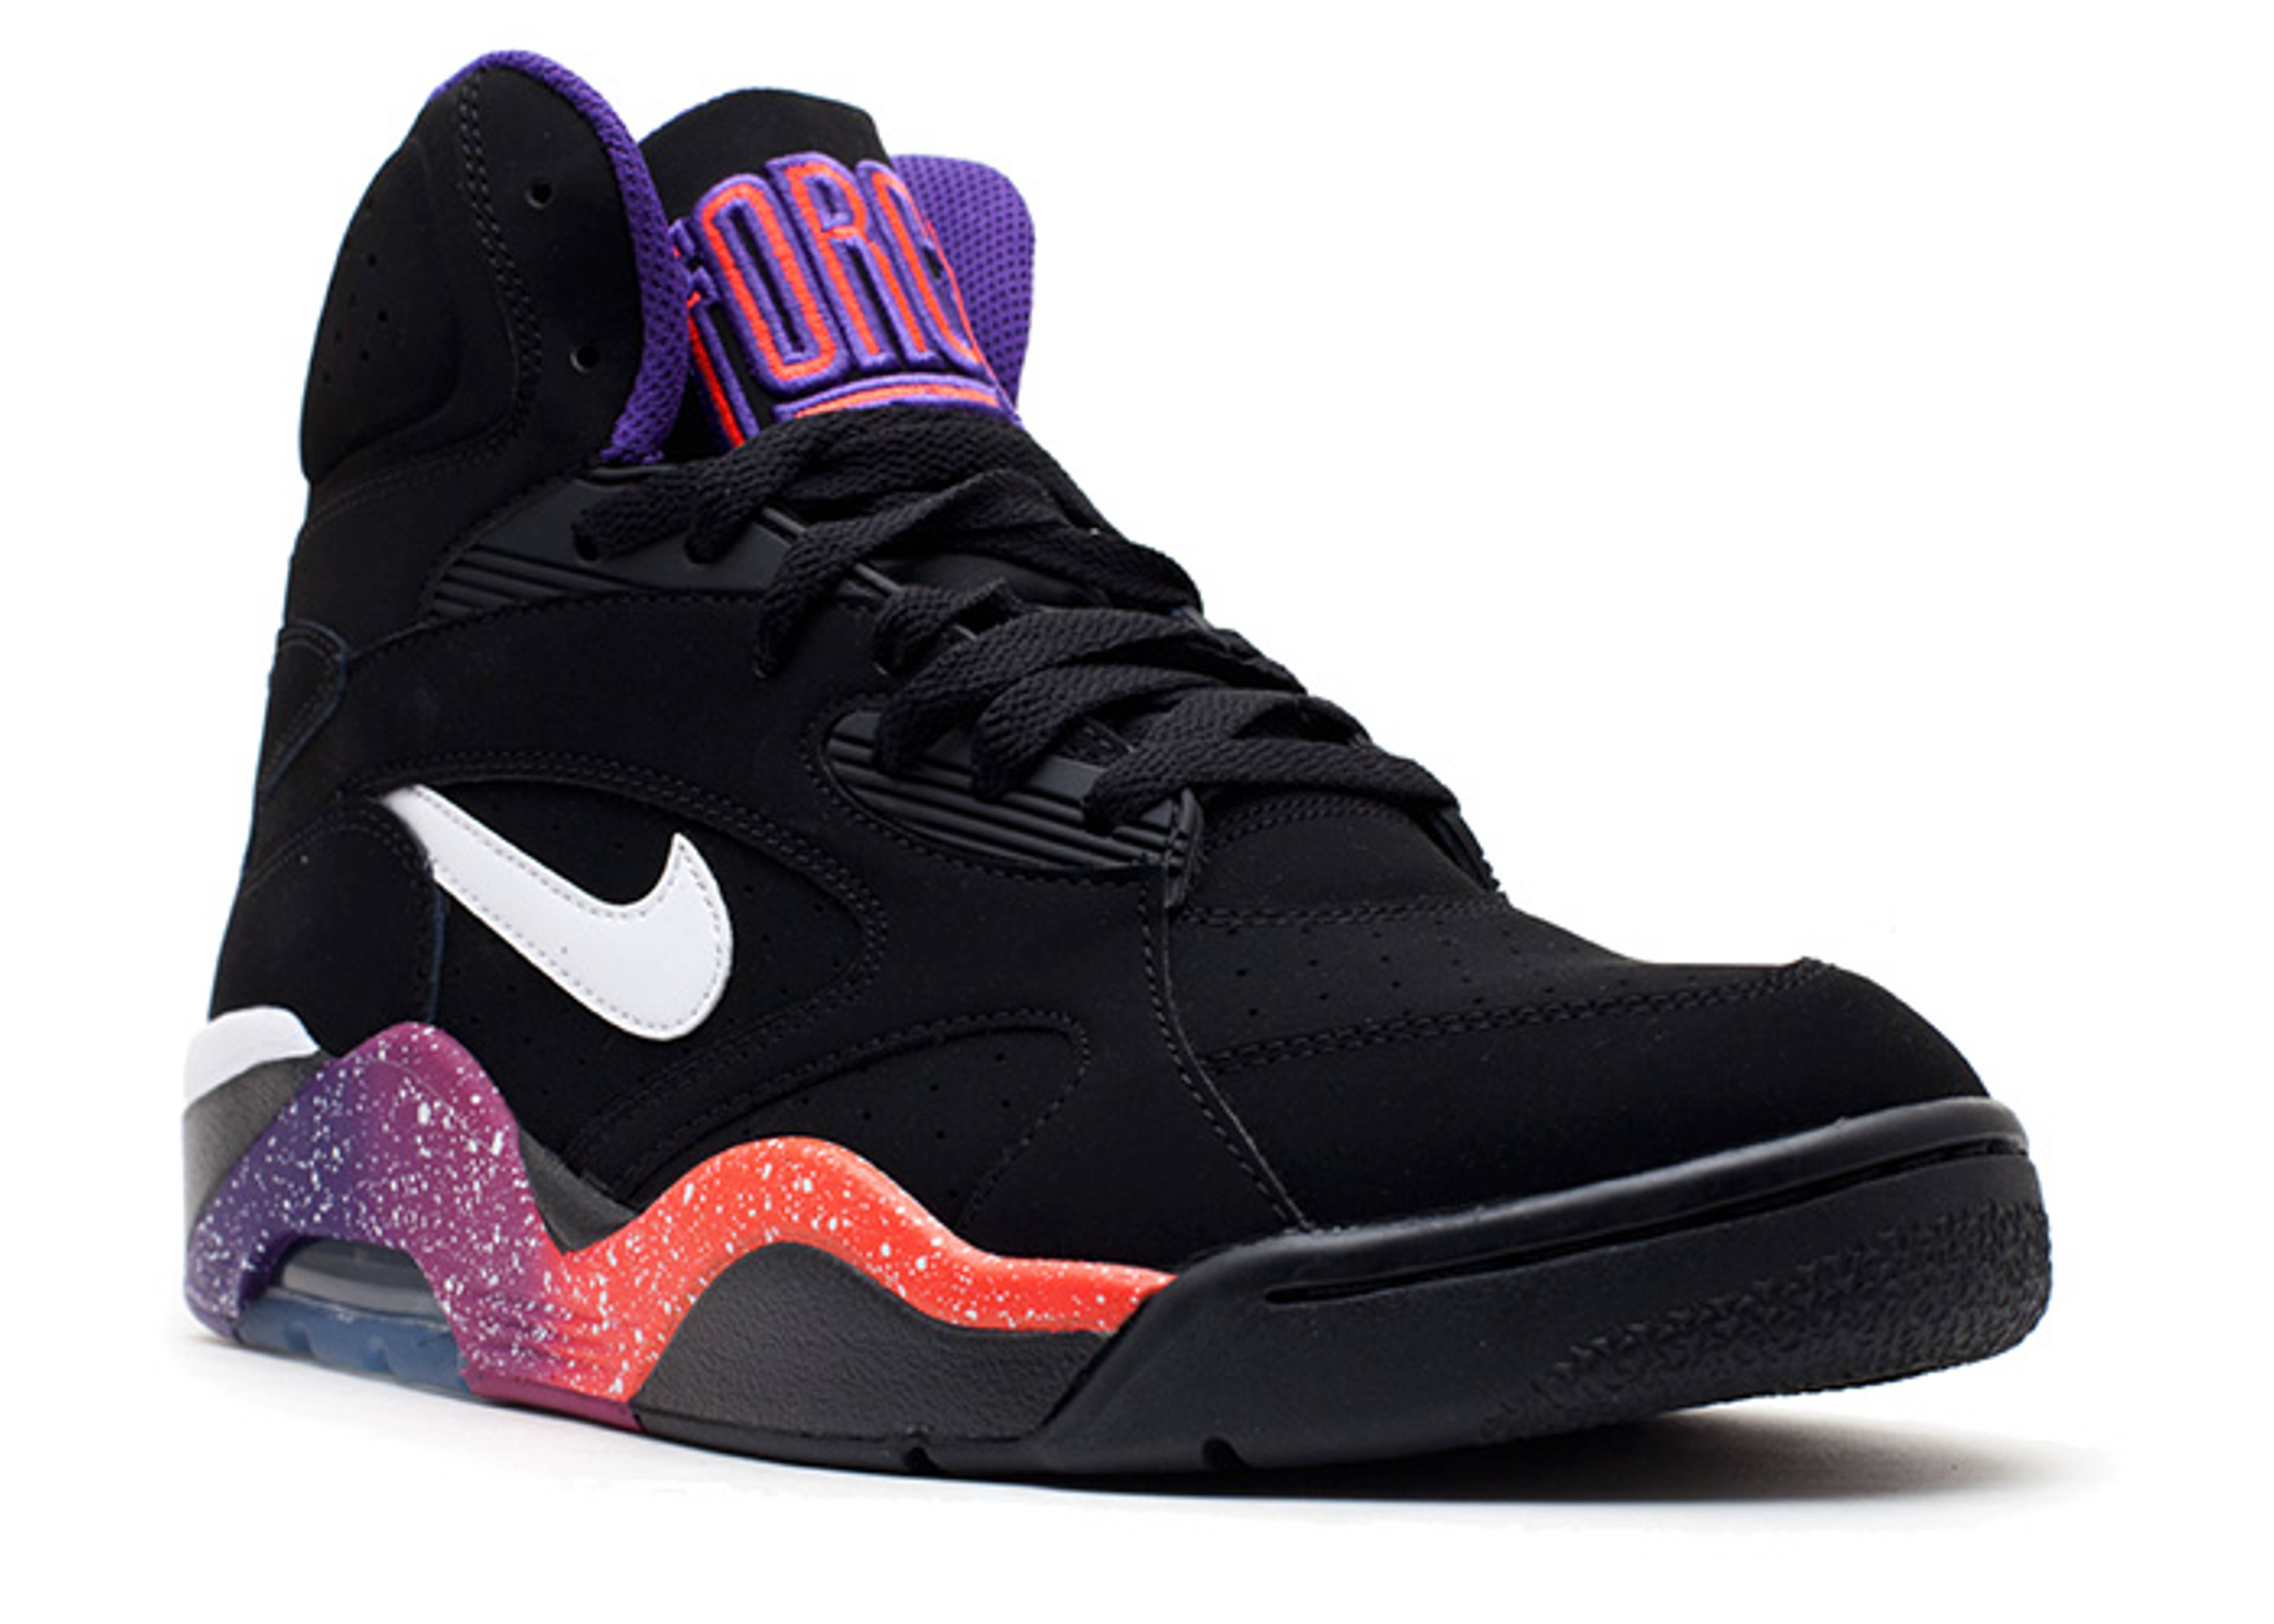 new style fe85c 55a73 ... nike. air force 180 mid  Nike Air Force 180 Mid Phoenix Suns ...